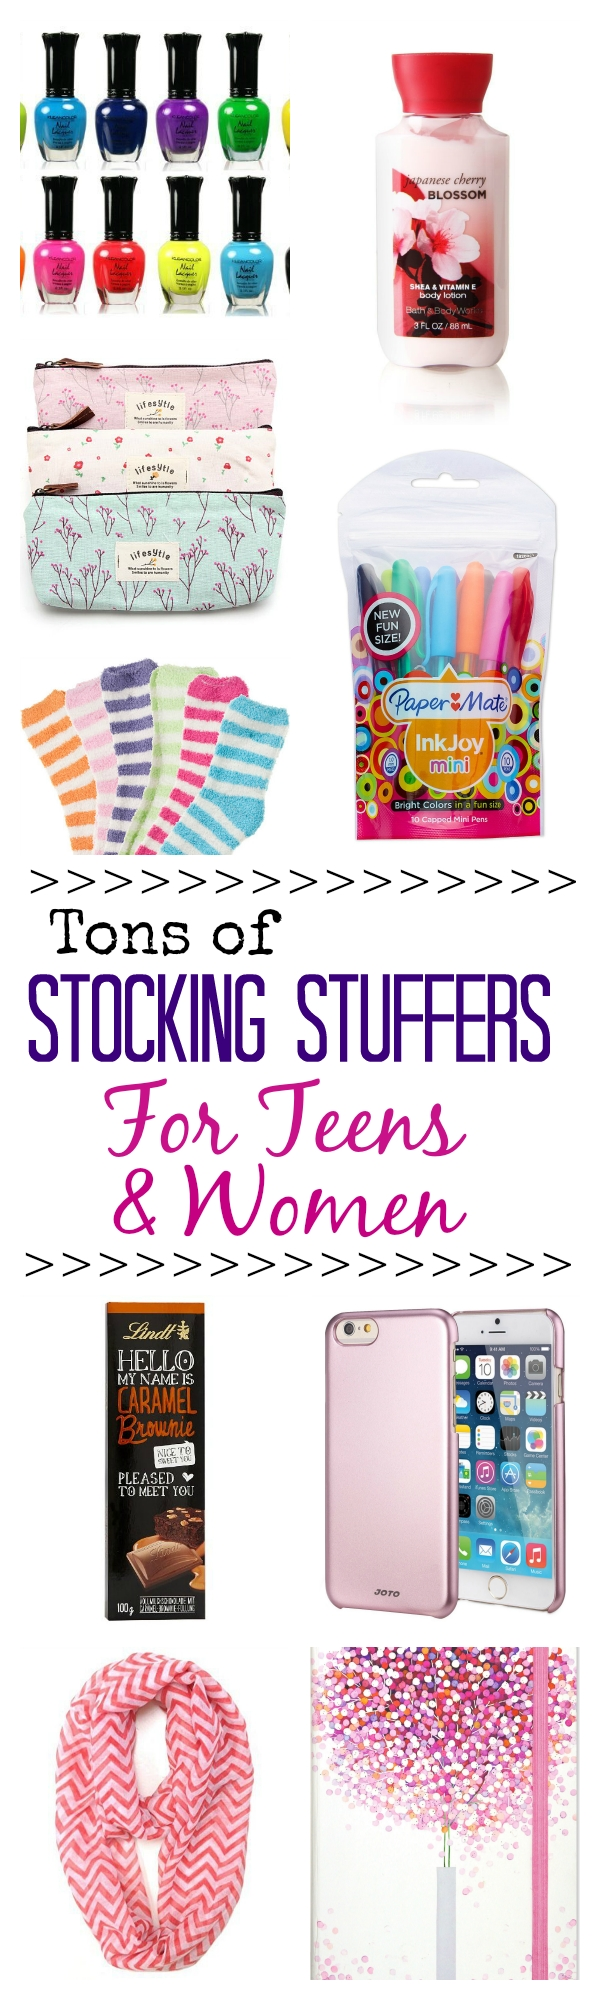 huge stocking stuffer ideas list - crazy little projects